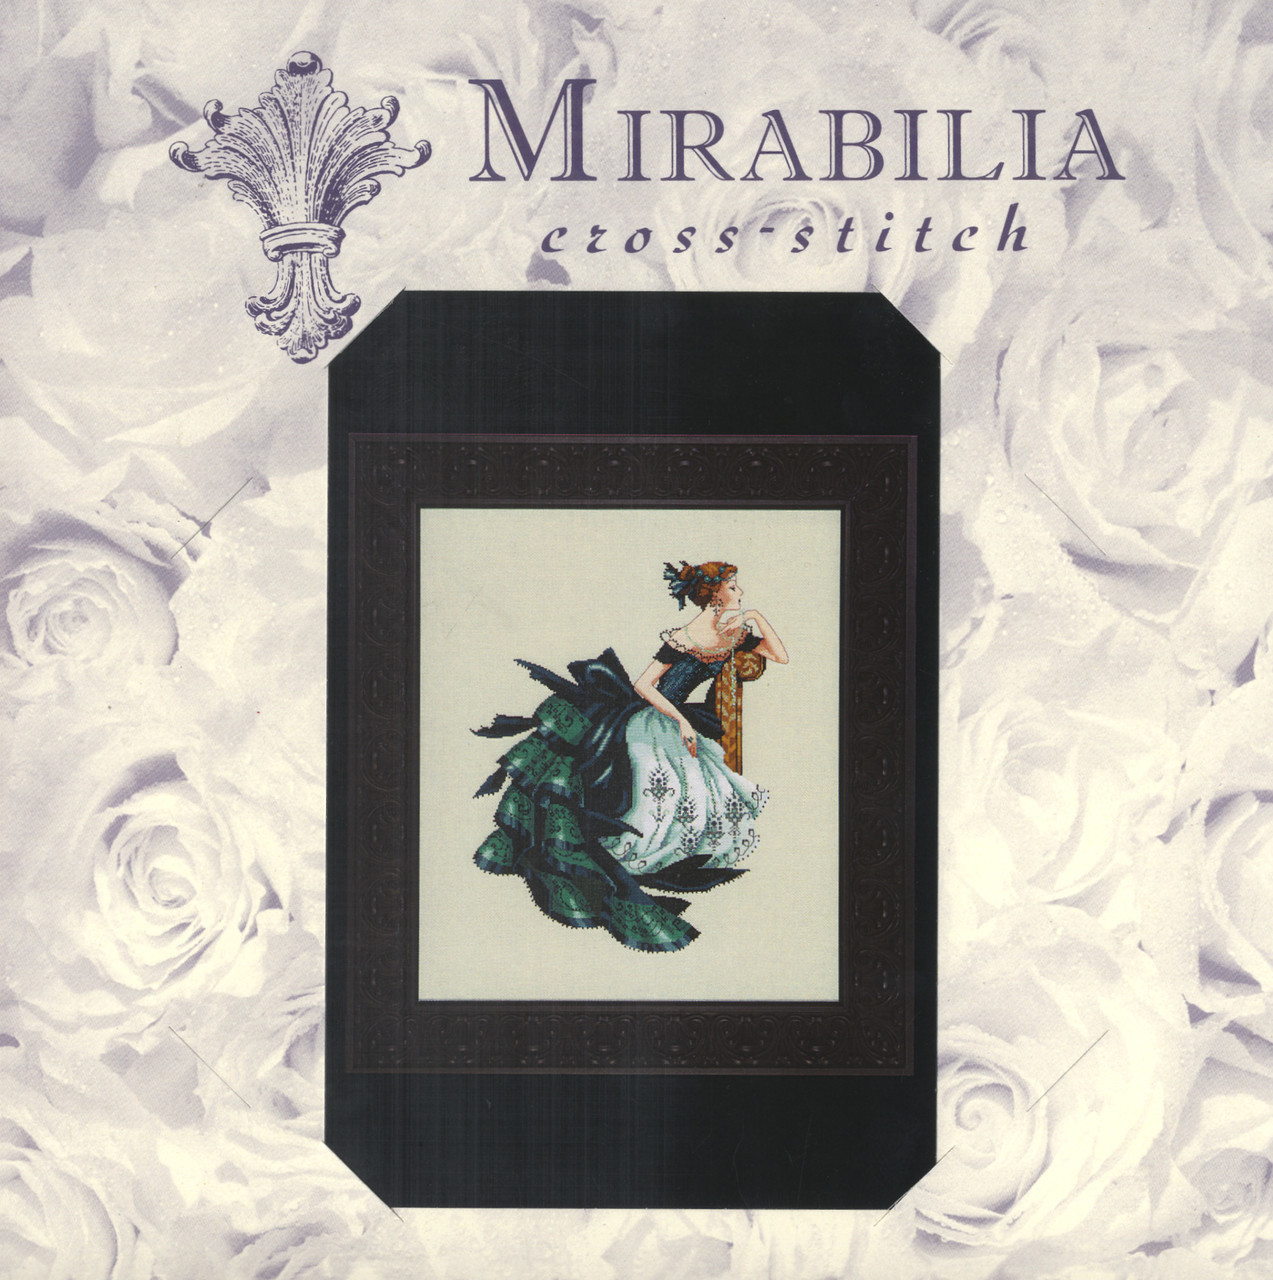 Mirabilia - Portrait of Veronica